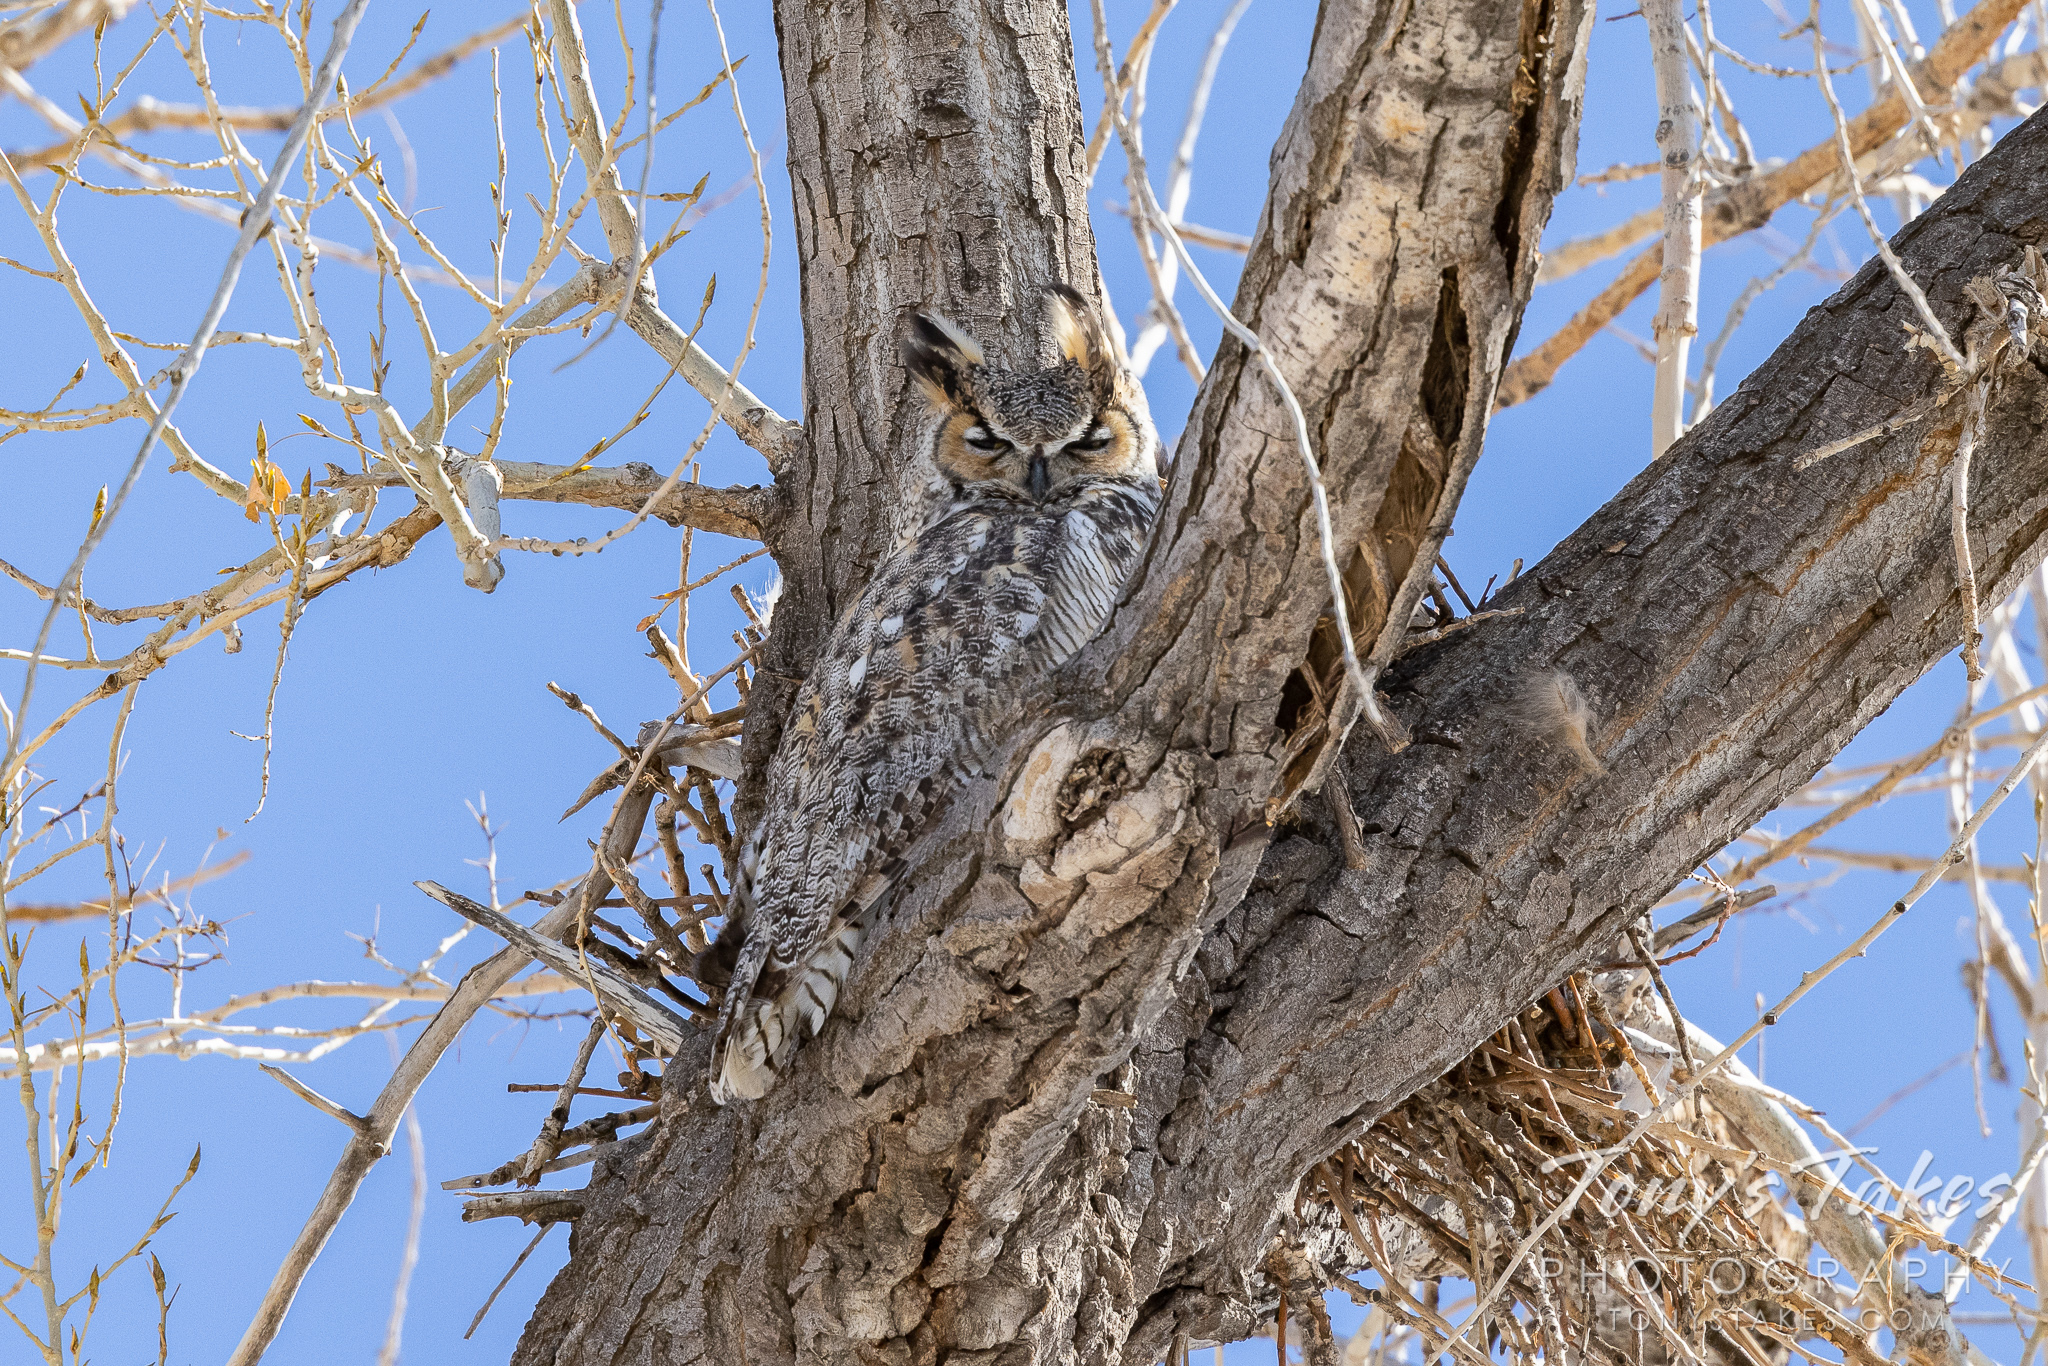 Great horned owl hangs out on high